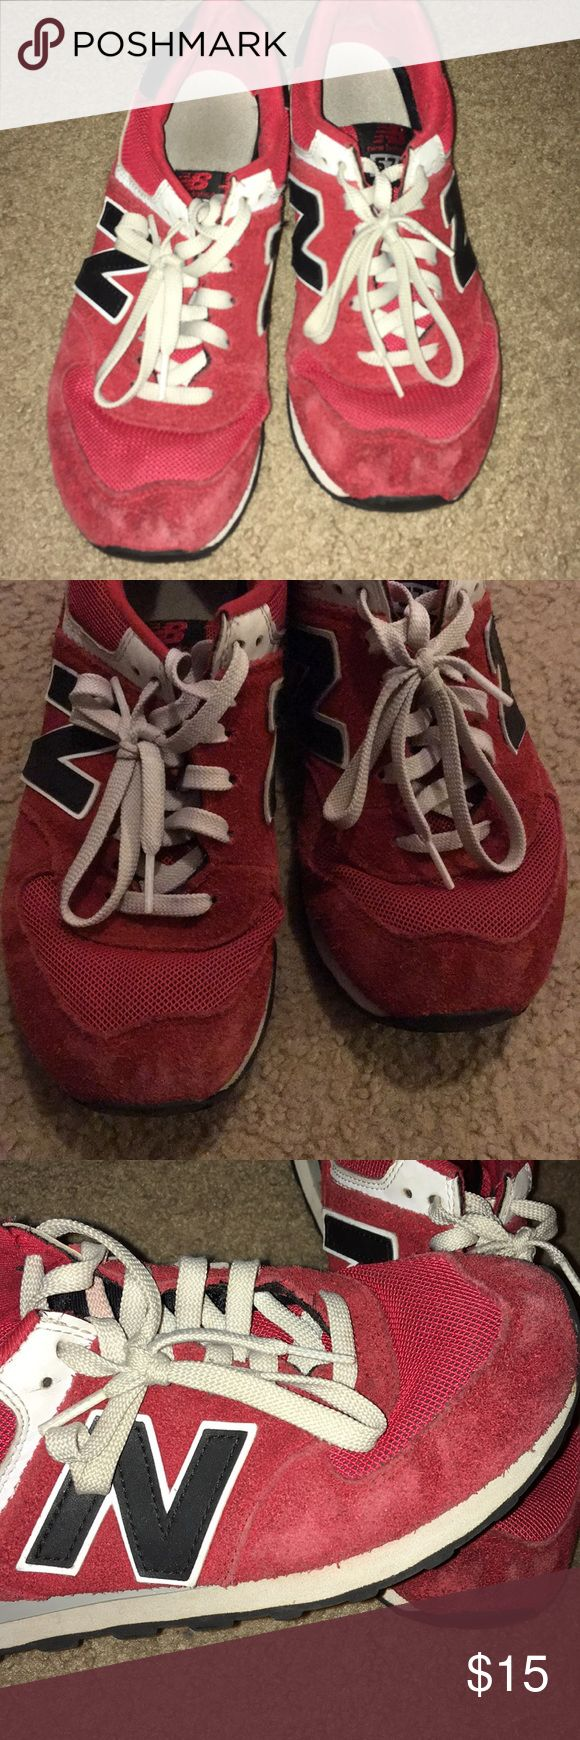 Used New Balance Red Sneaker Used but still has life, cleaning out Son closet so selling real cheap* Final*** As is, Pics show all flaws, faded on suede parts etc.. no tears but sold as is.. New Balance Shoes Sneakers